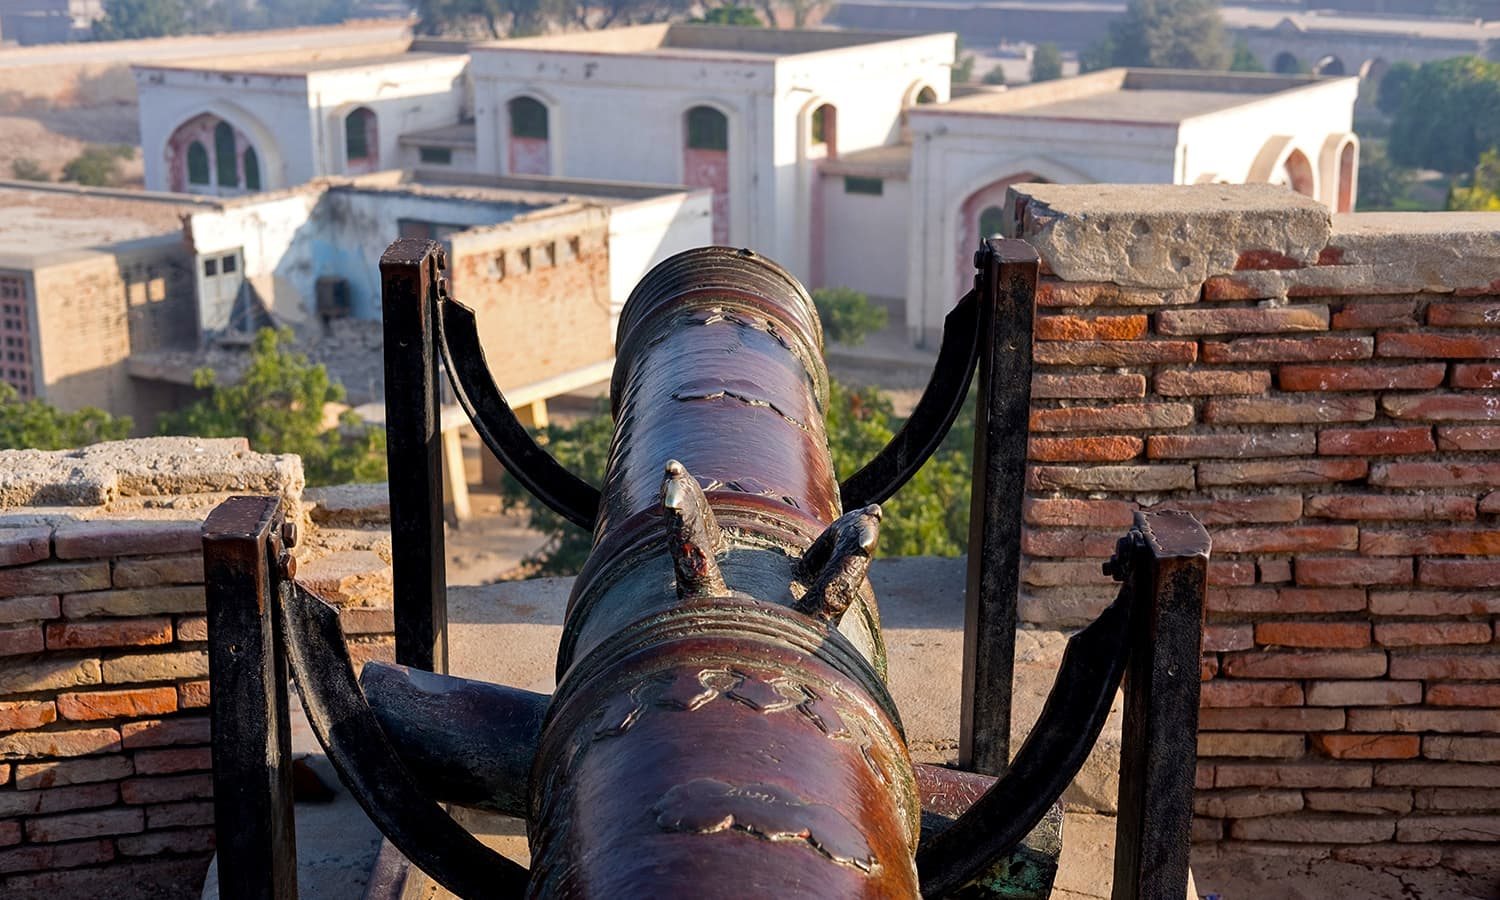 A cannon overlooking the town.